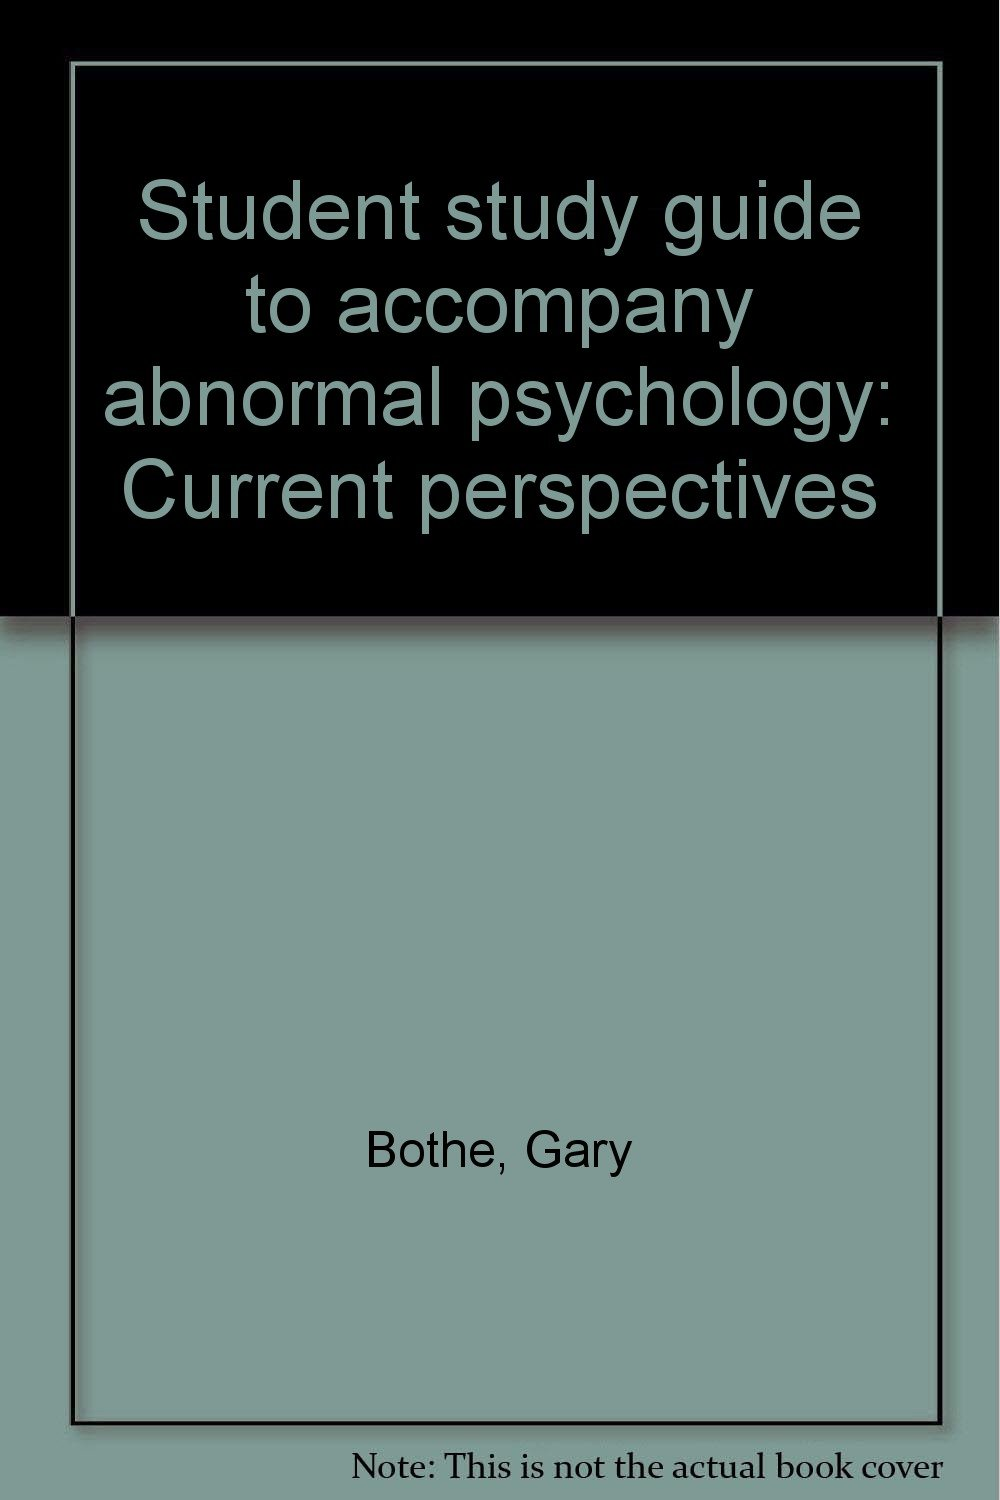 Student study guide to accompany abnormal psychology: Current perspectives:  Gary Bothe: Amazon.com: Books